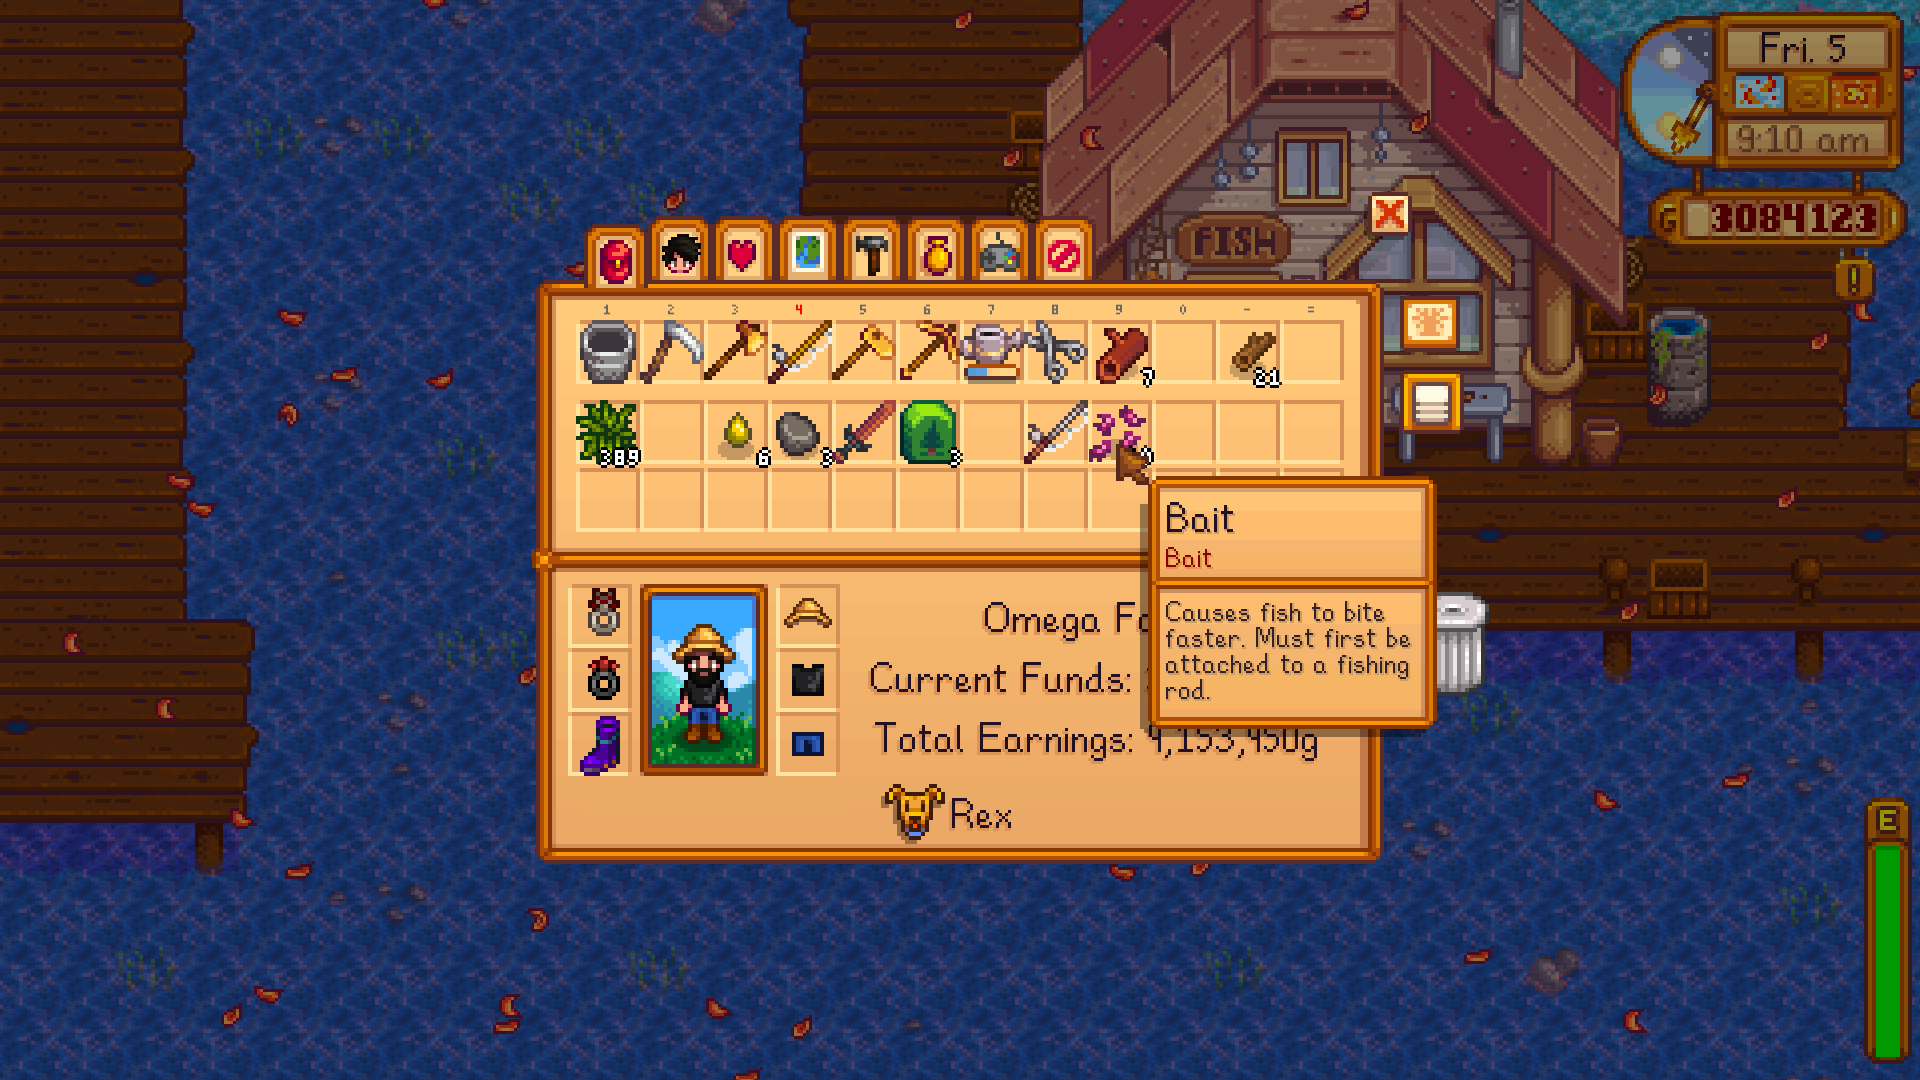 How To Use Bait Stardew Valley